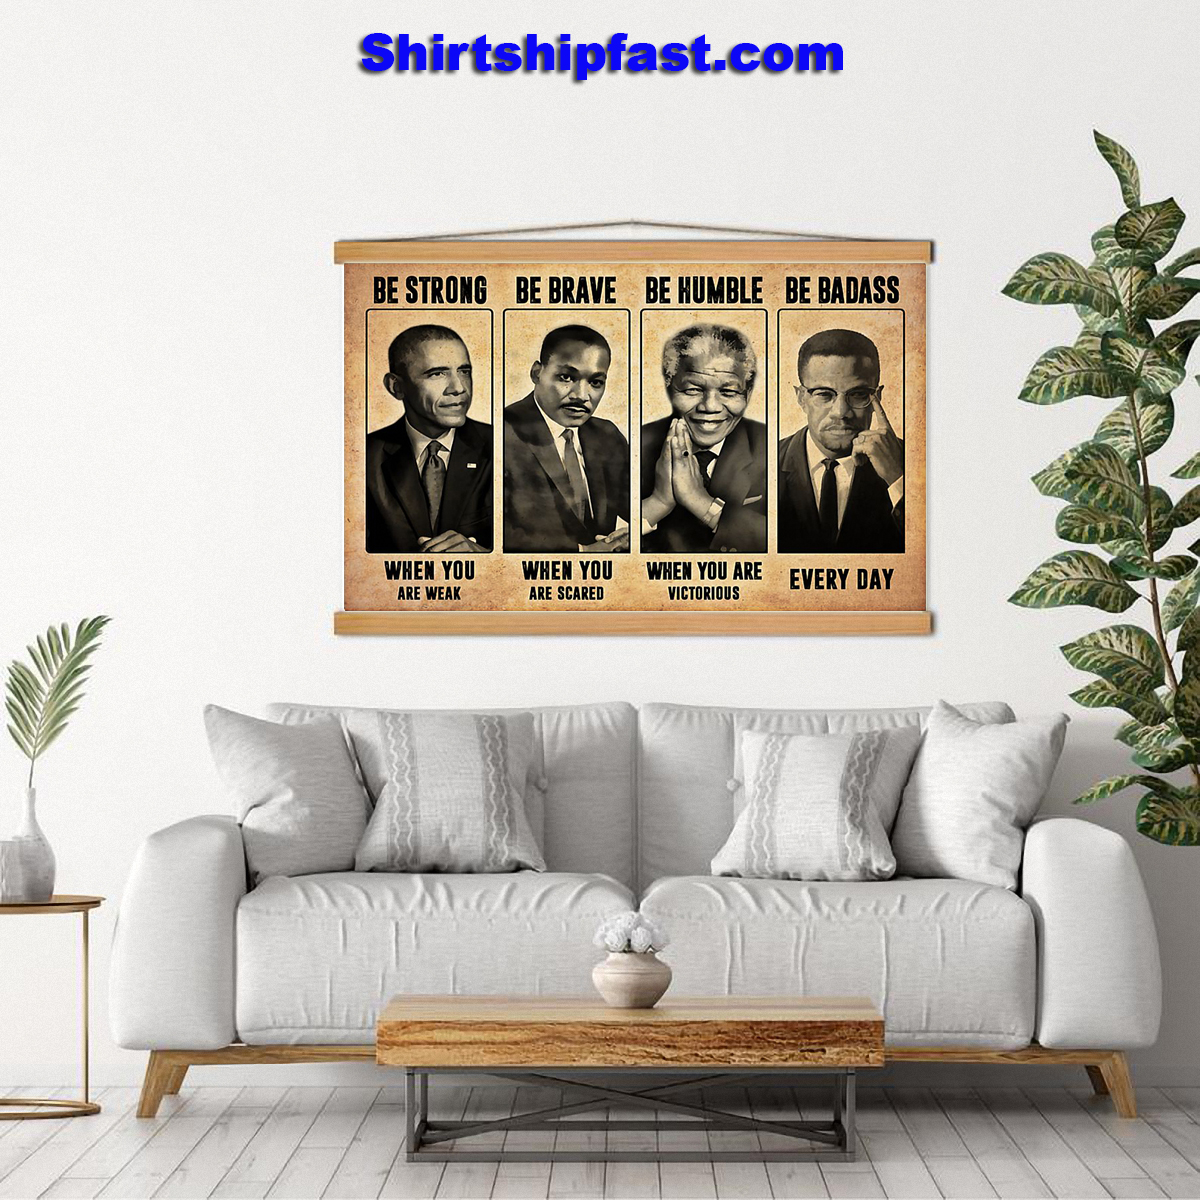 The civil right leads be strong be brave be humble be badass canvas